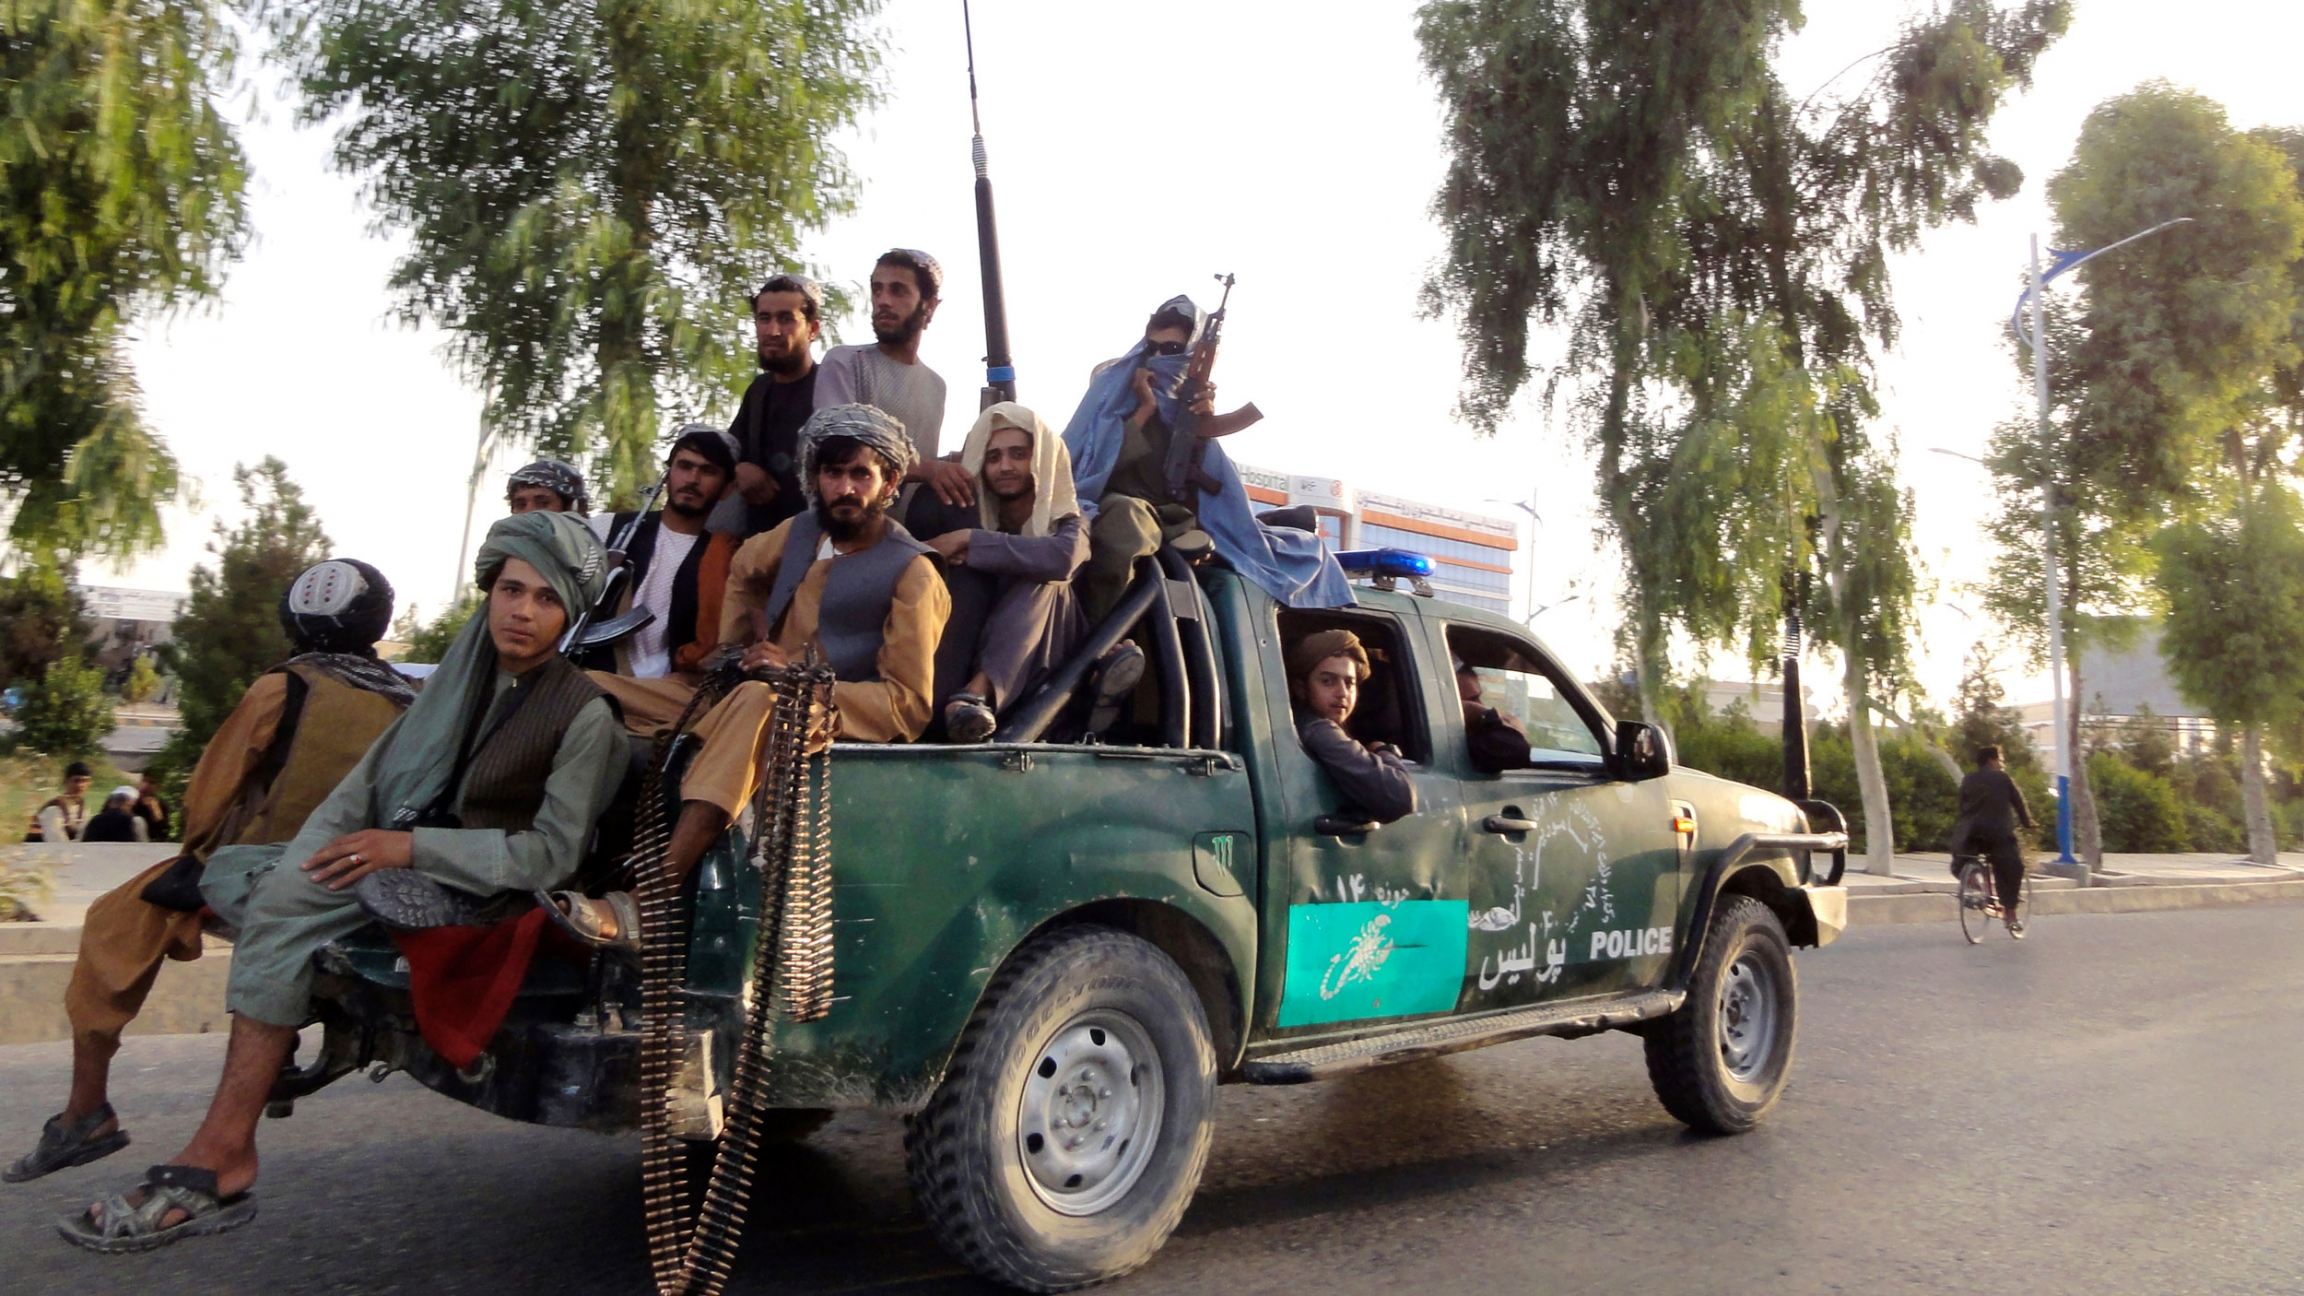 Several Taliban fighters are shown sitting in the back of a pickup truck, several holding weapons.